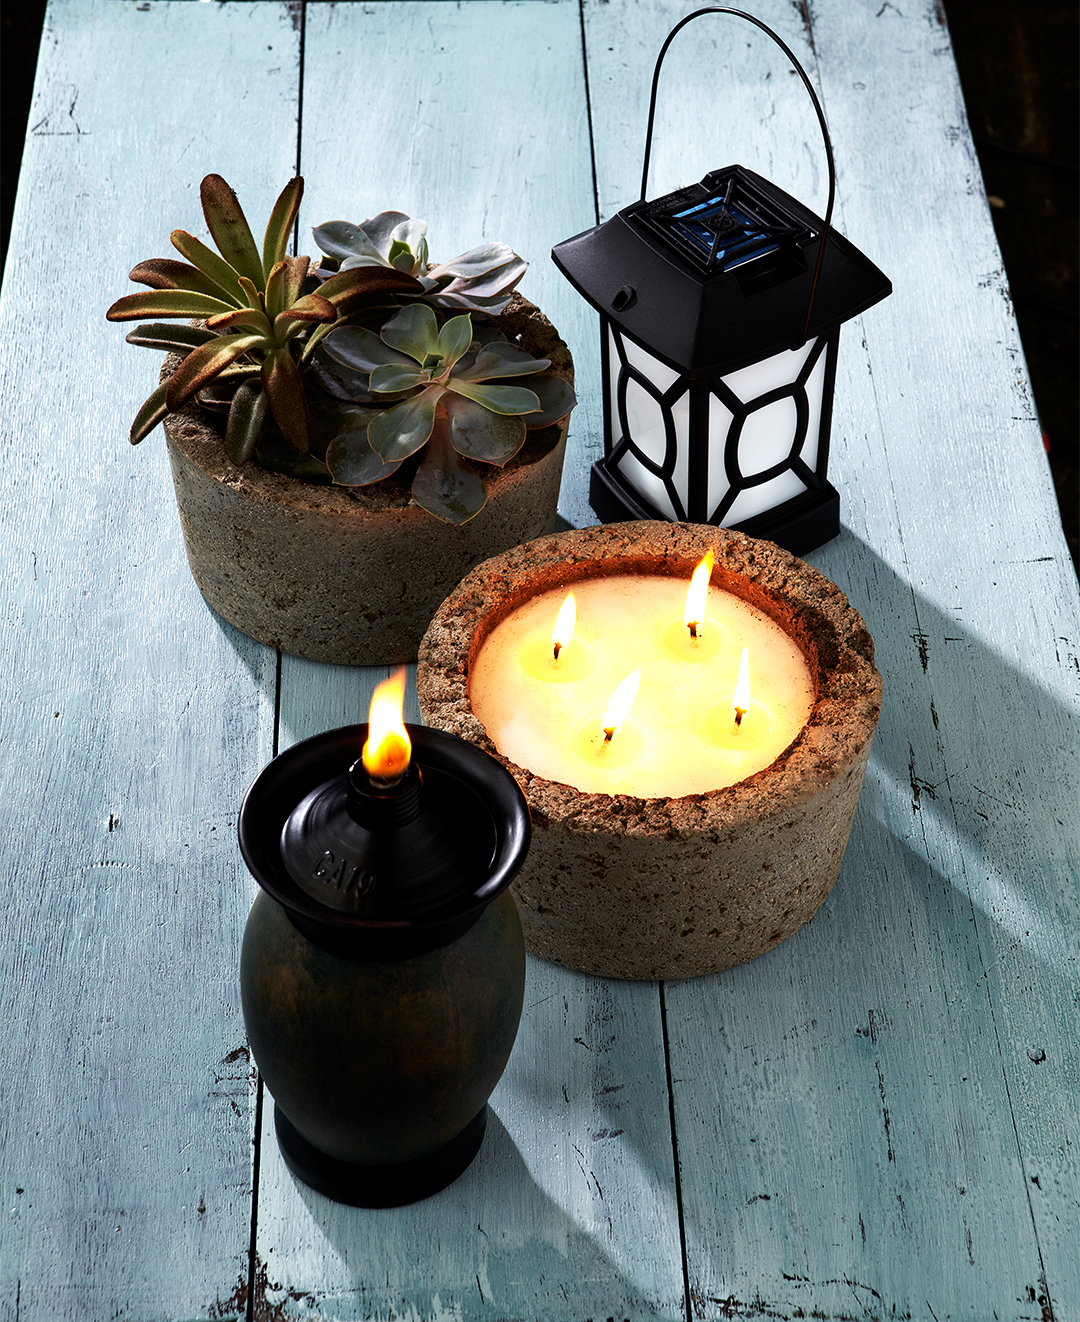 picnic table mosquito repellent products candles plants lantern